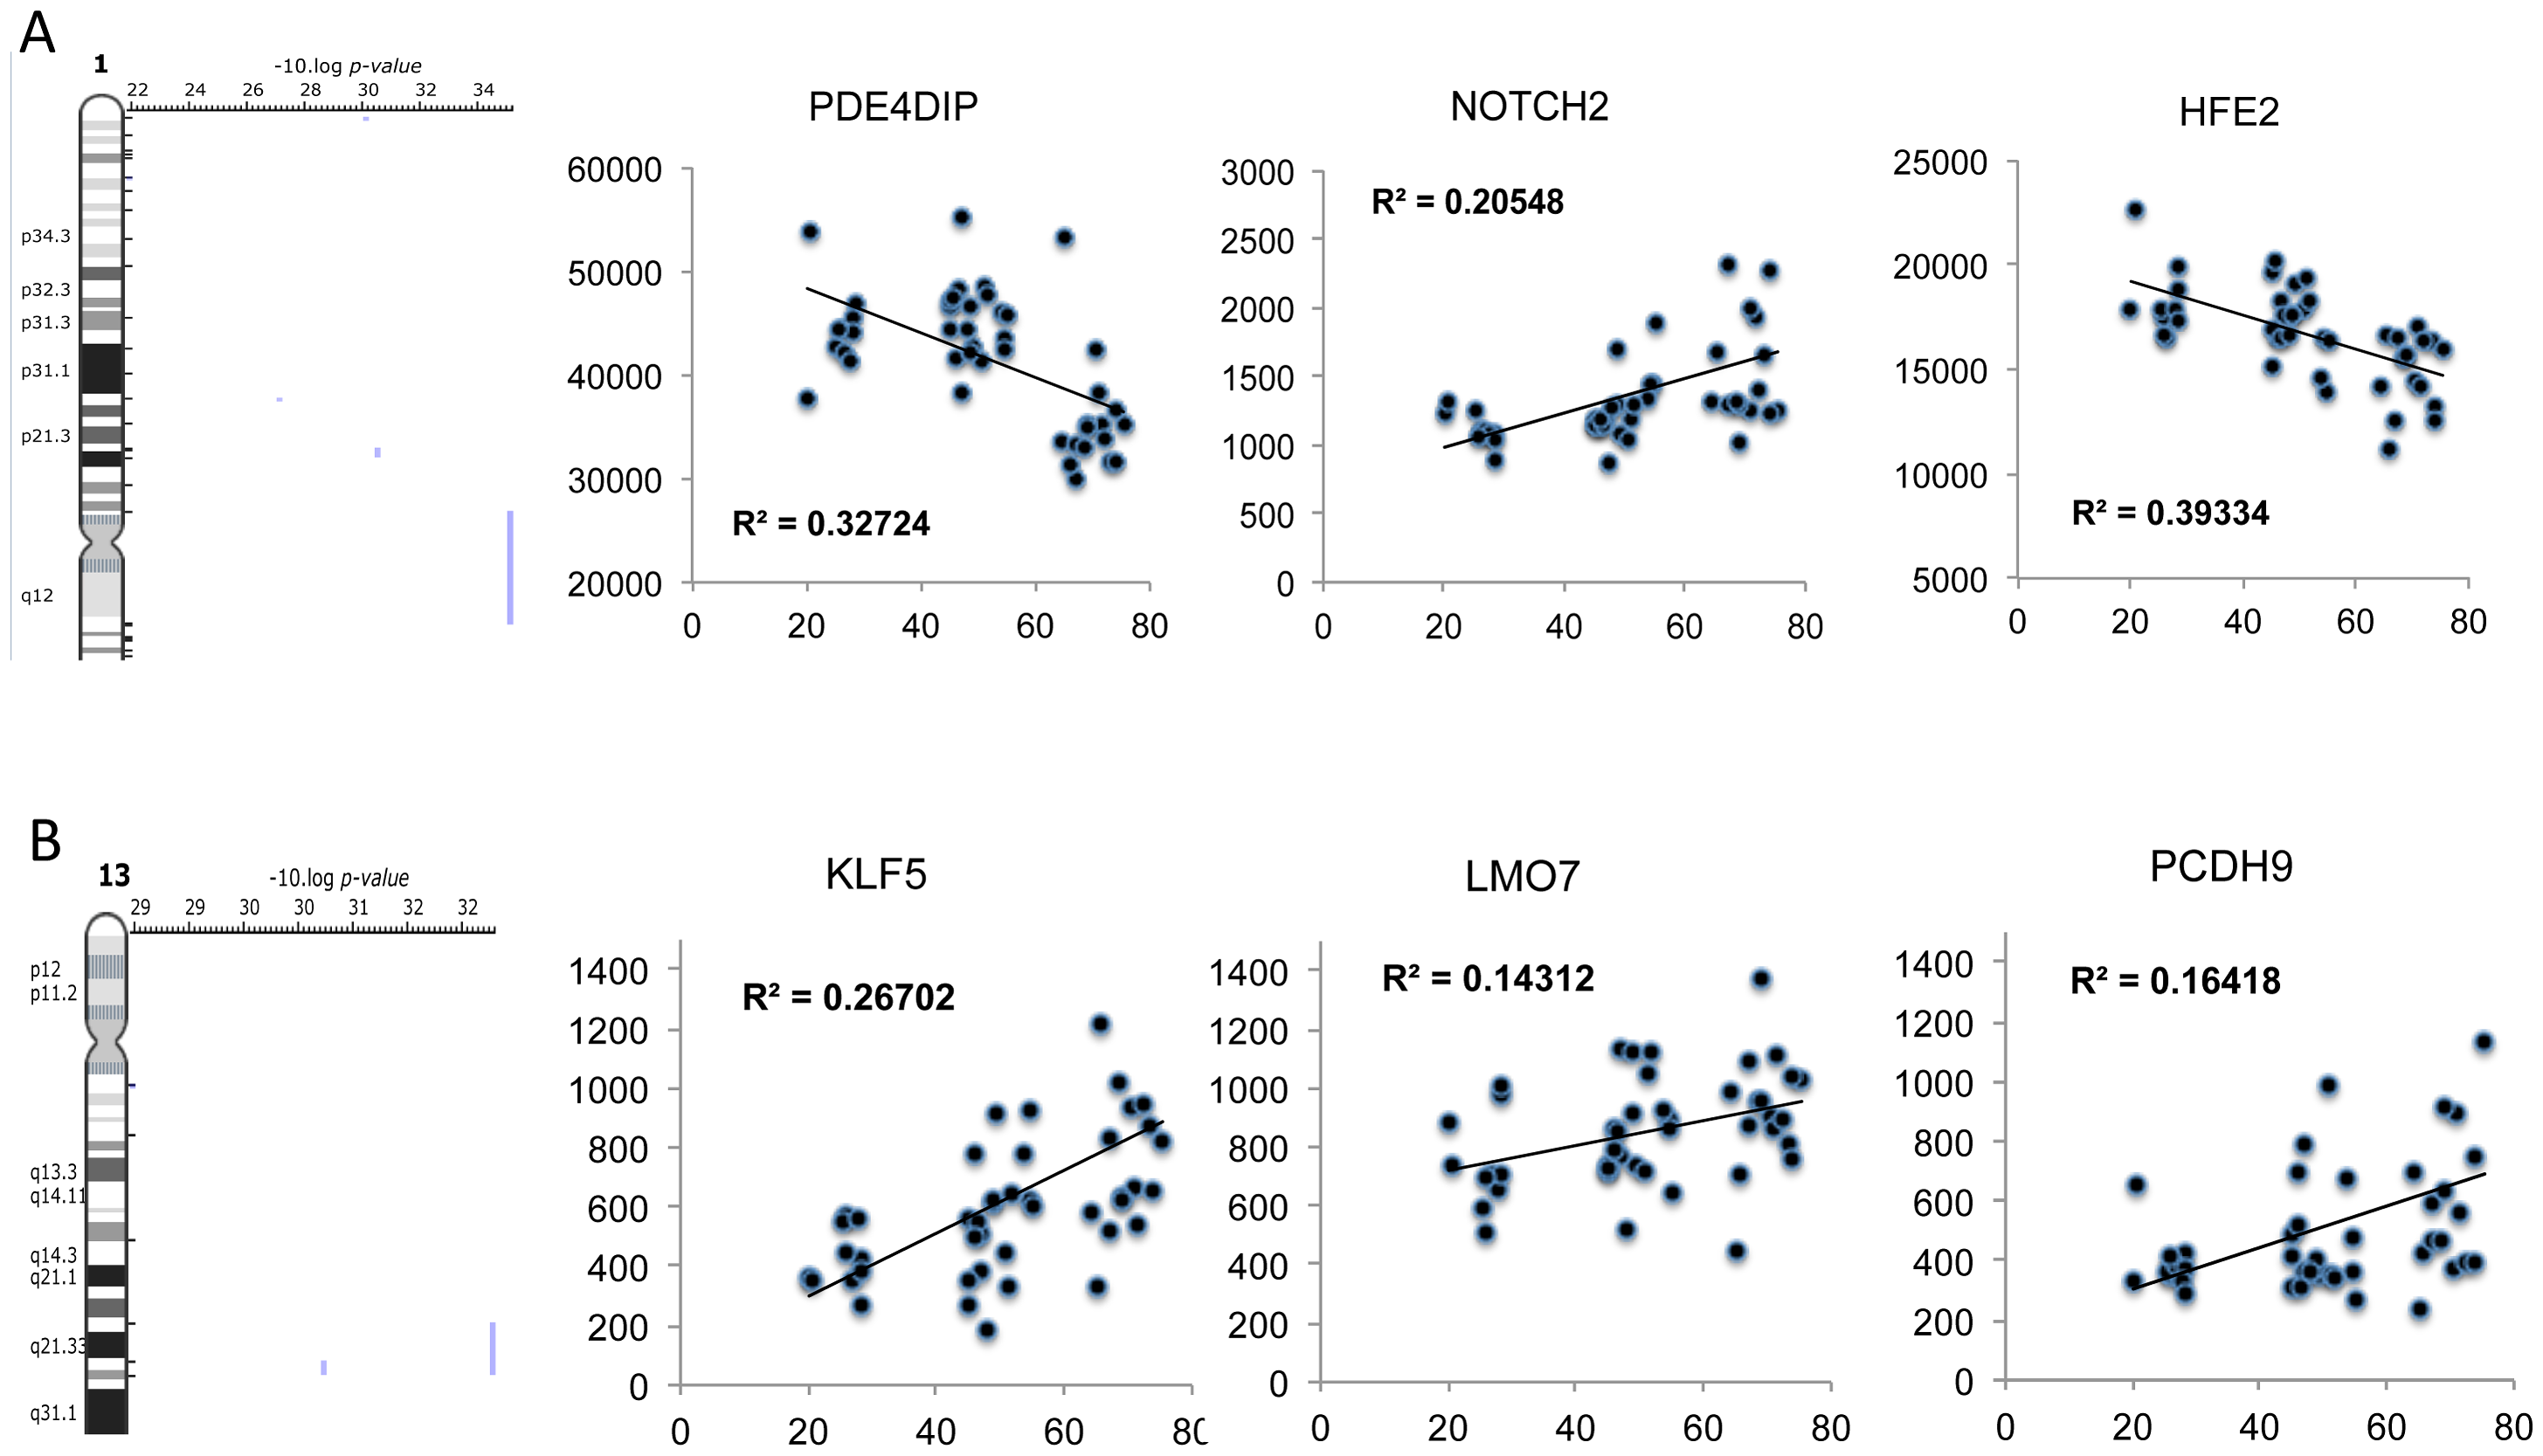 Positional enrichment analysis identified age-related genes that were over-represented on 4 chromosomes including Chromosome 1 and 13.